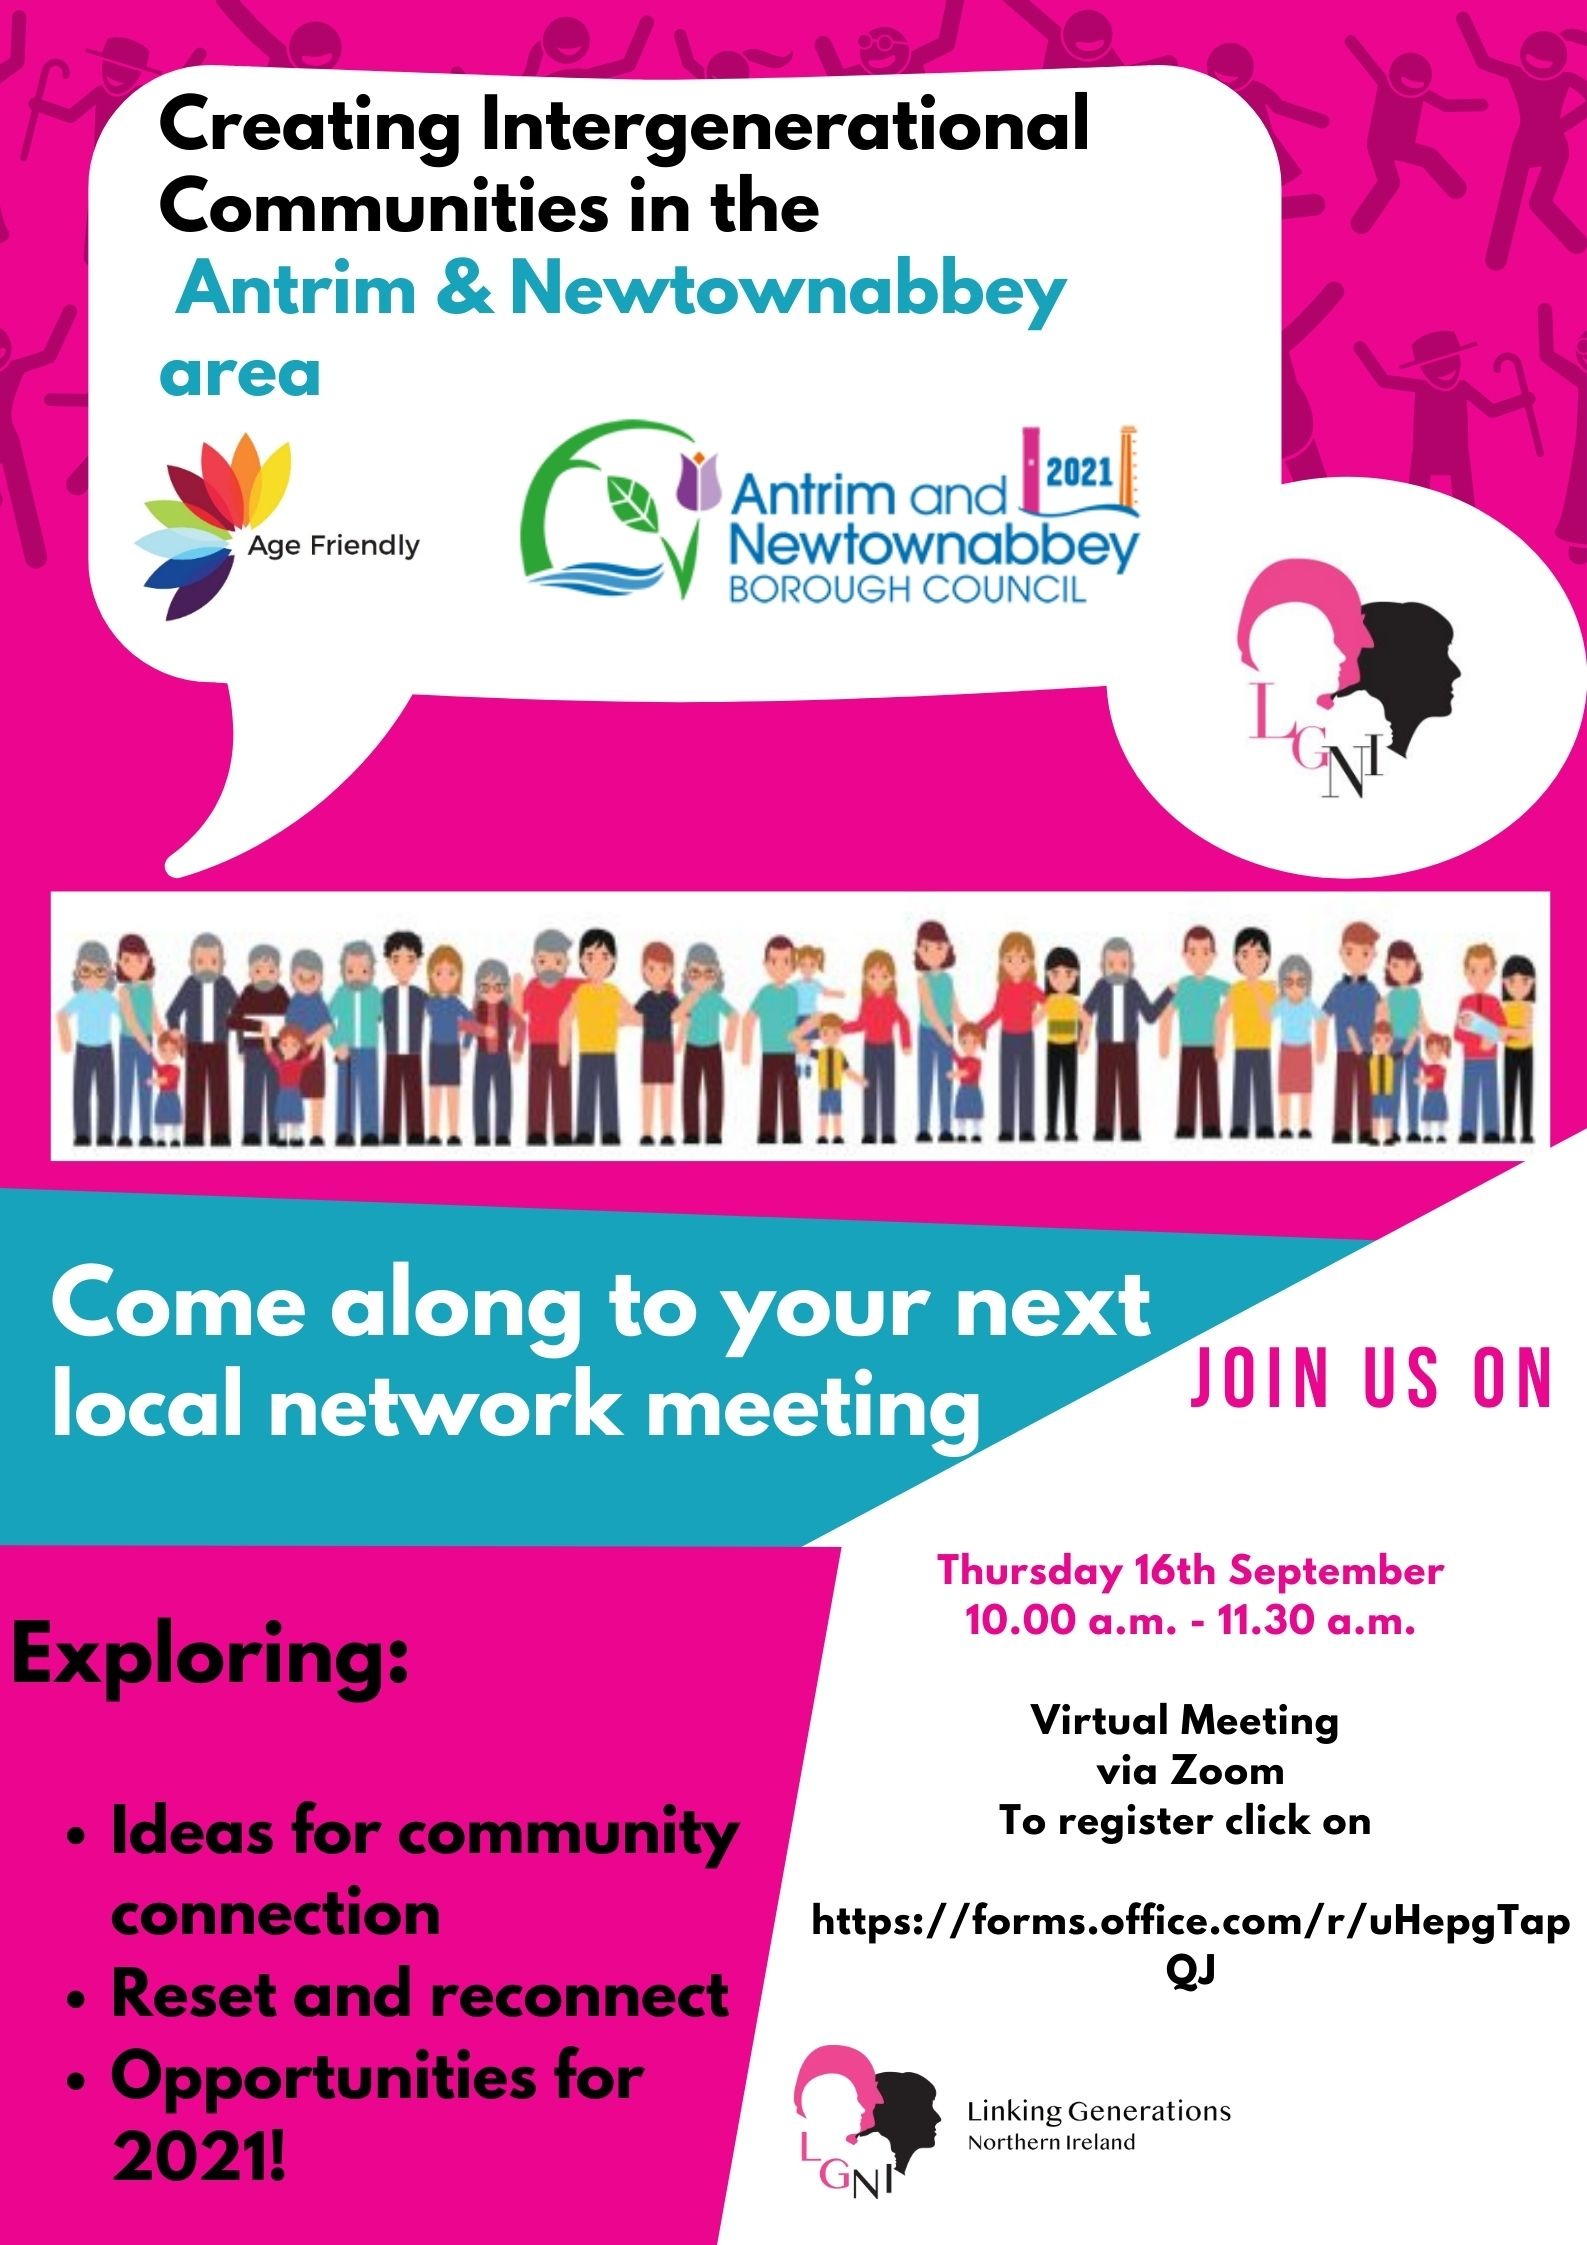 LGNI Antrim and Newtownabbey Network Meeting